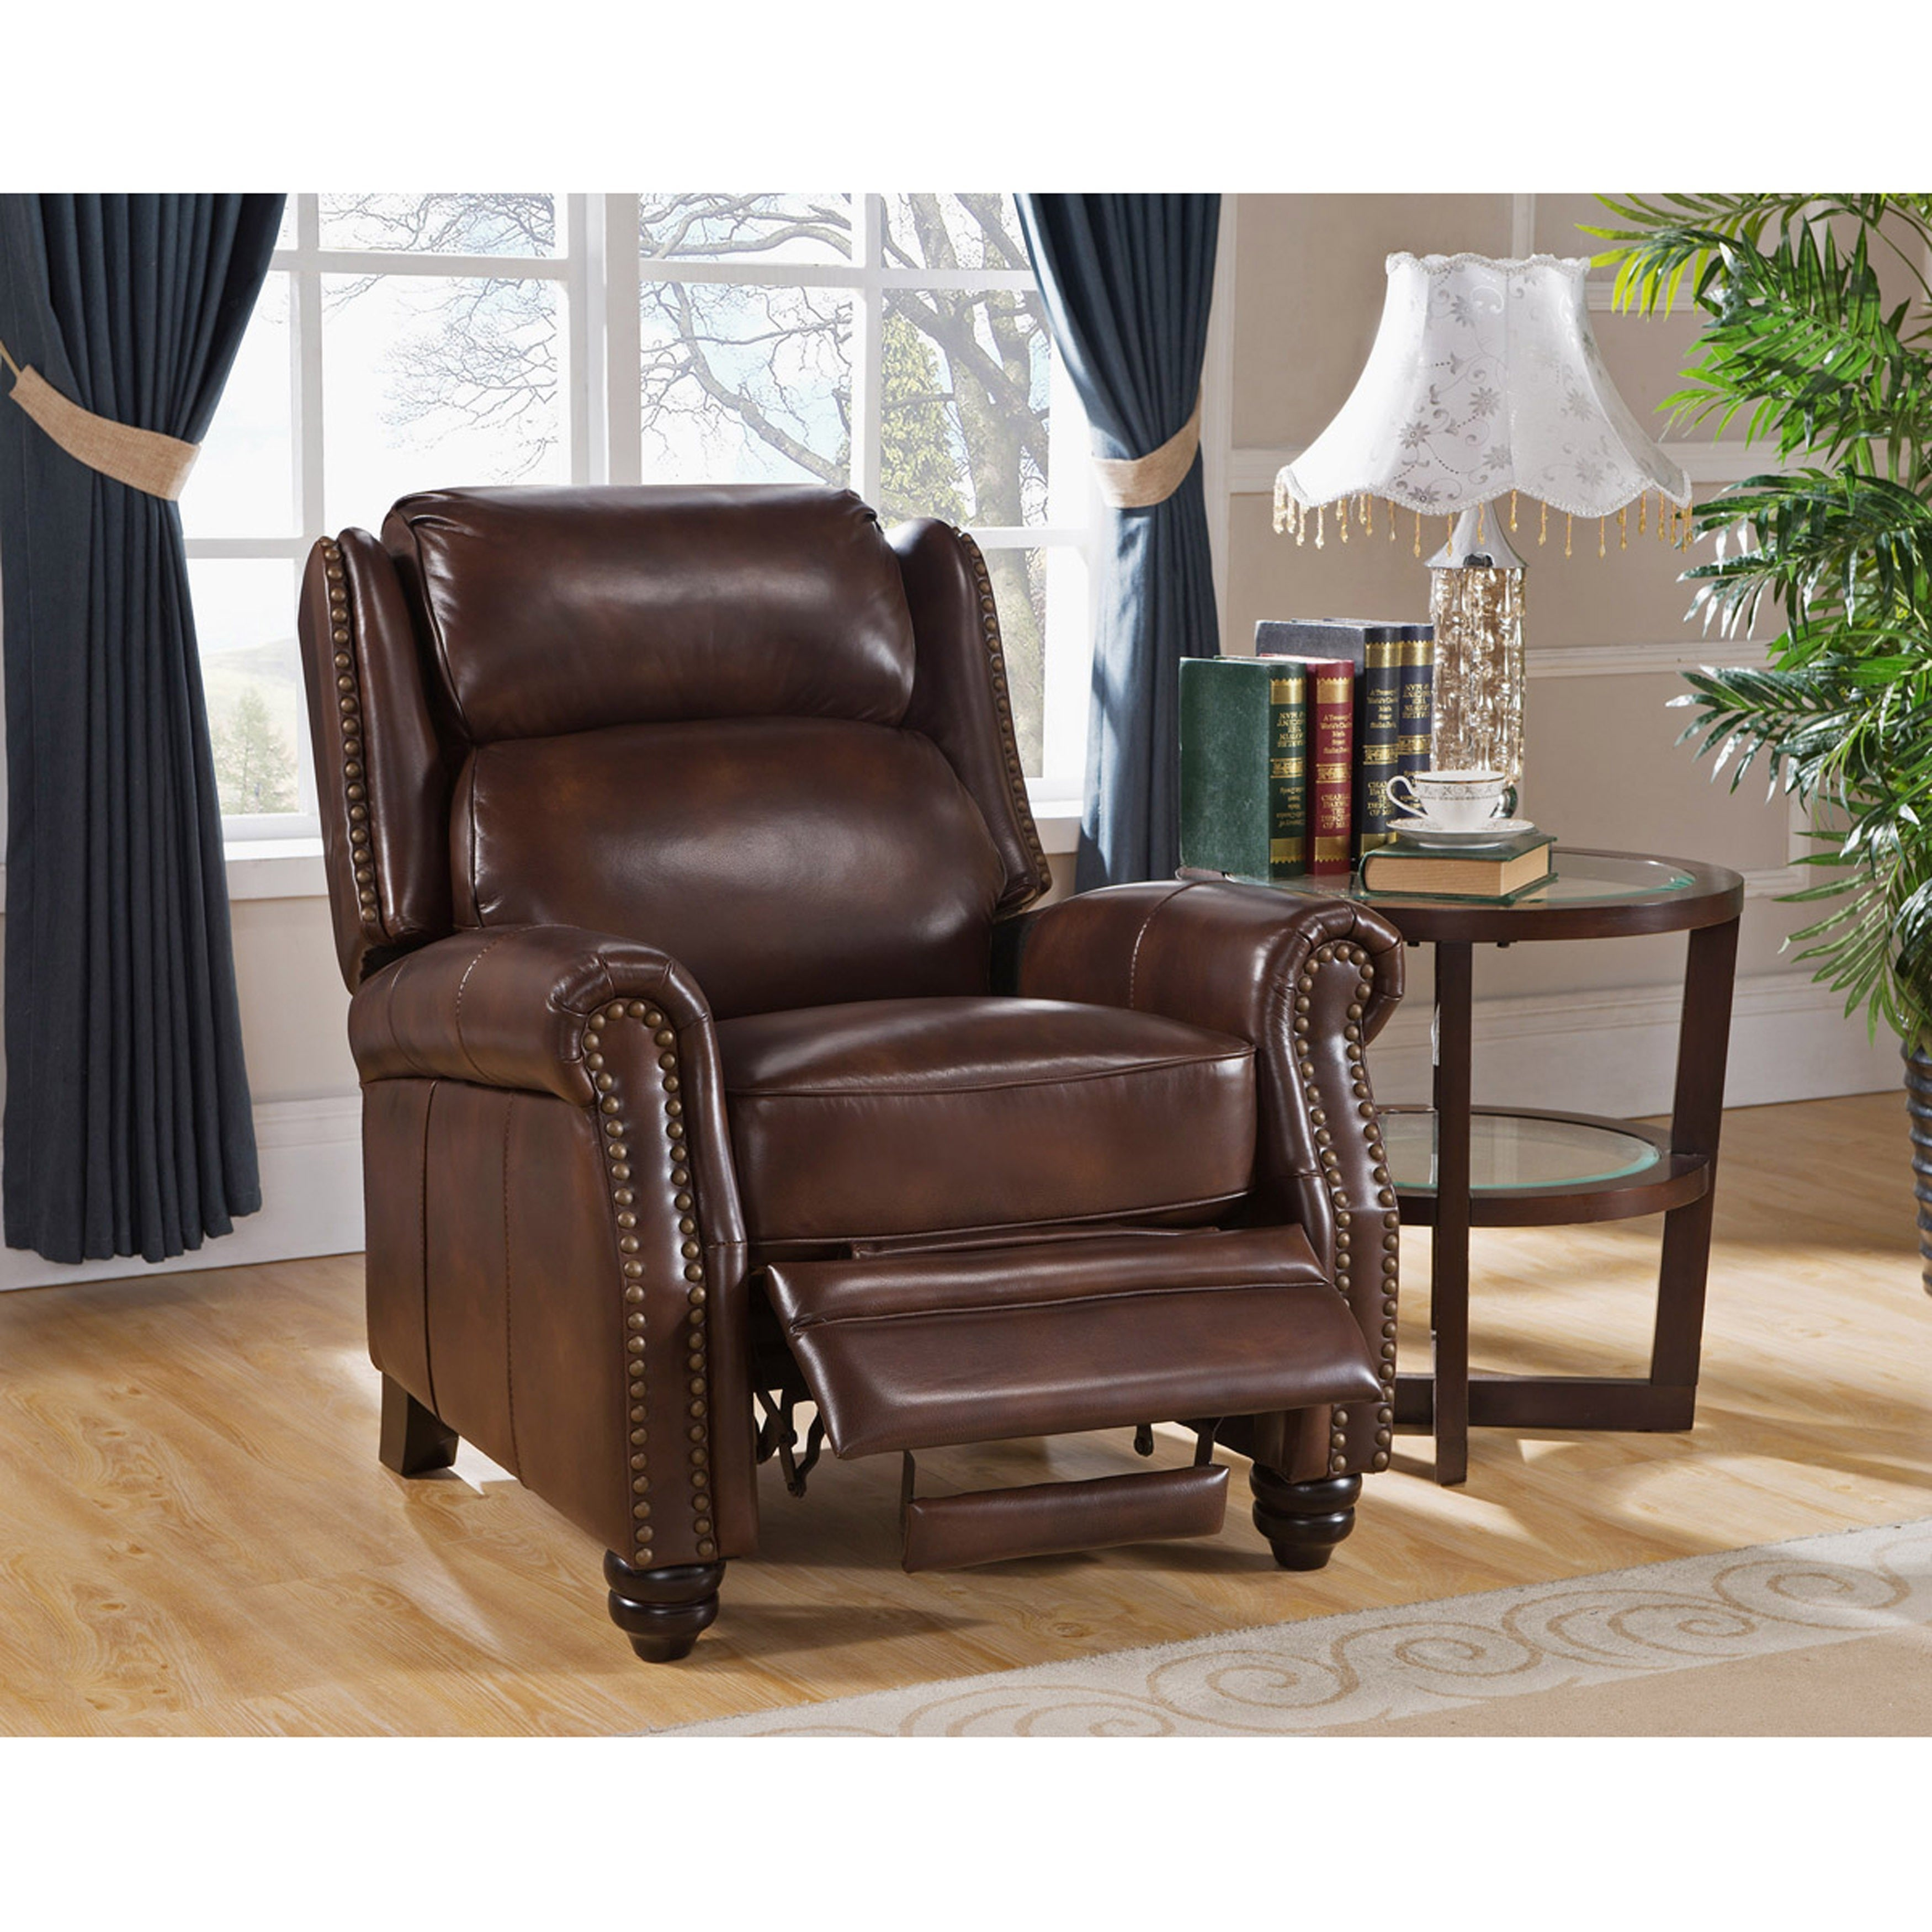 best products product rakuten leather bestchoiceproducts chair recliner home theater white shop choice